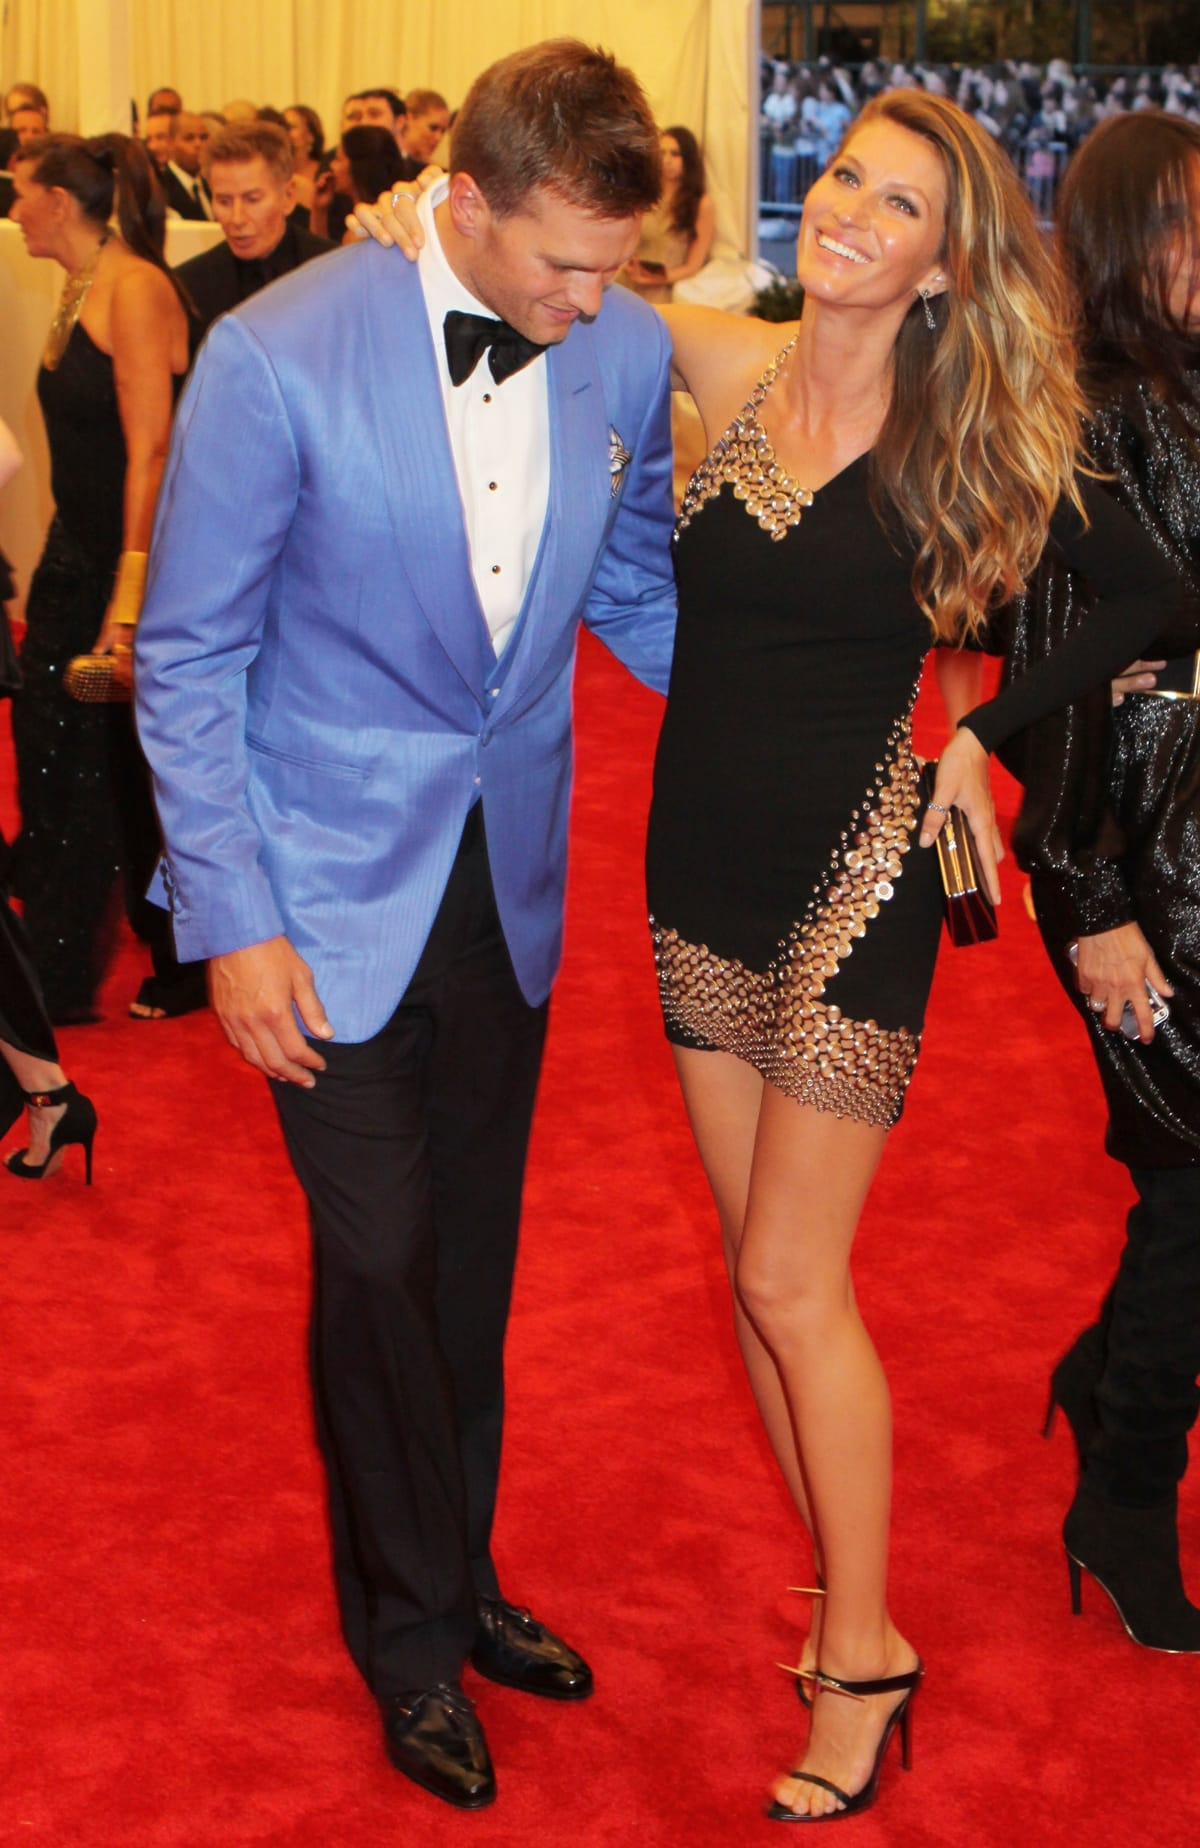 Gisele Bündchen in a black Anthony Vaccarello dress and Tom Brady in a blue suit jacket at the 2013 Met Gala